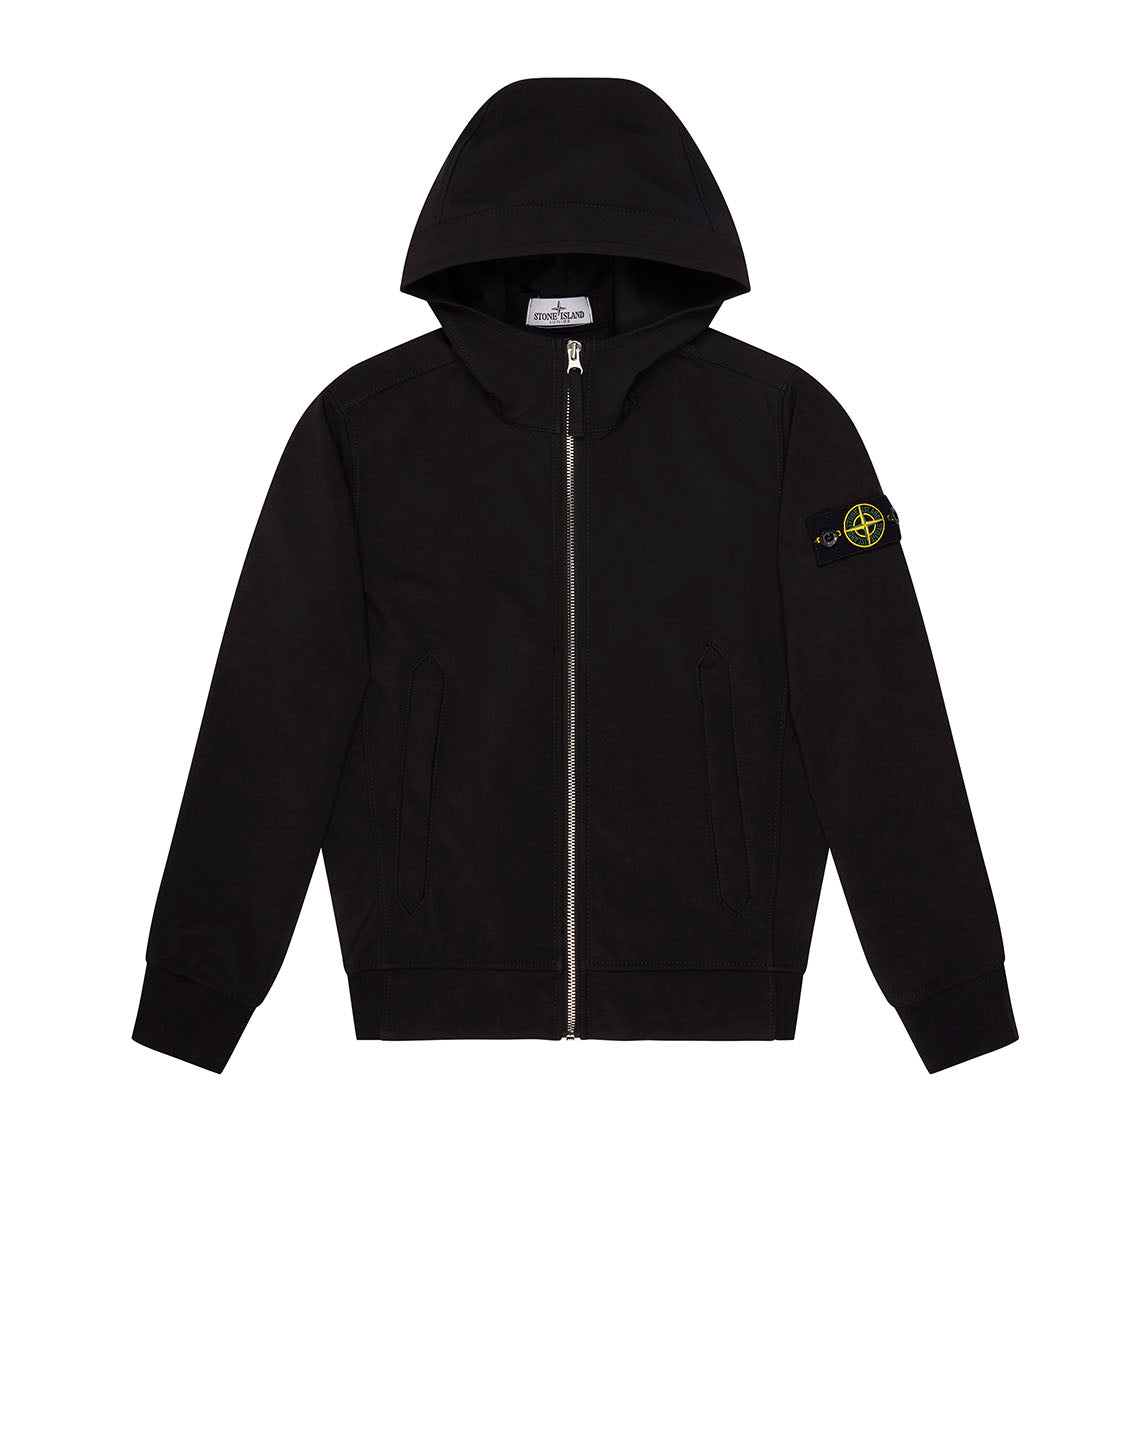 40134 LIGHT SOFT SHELL-R Jacket in Black